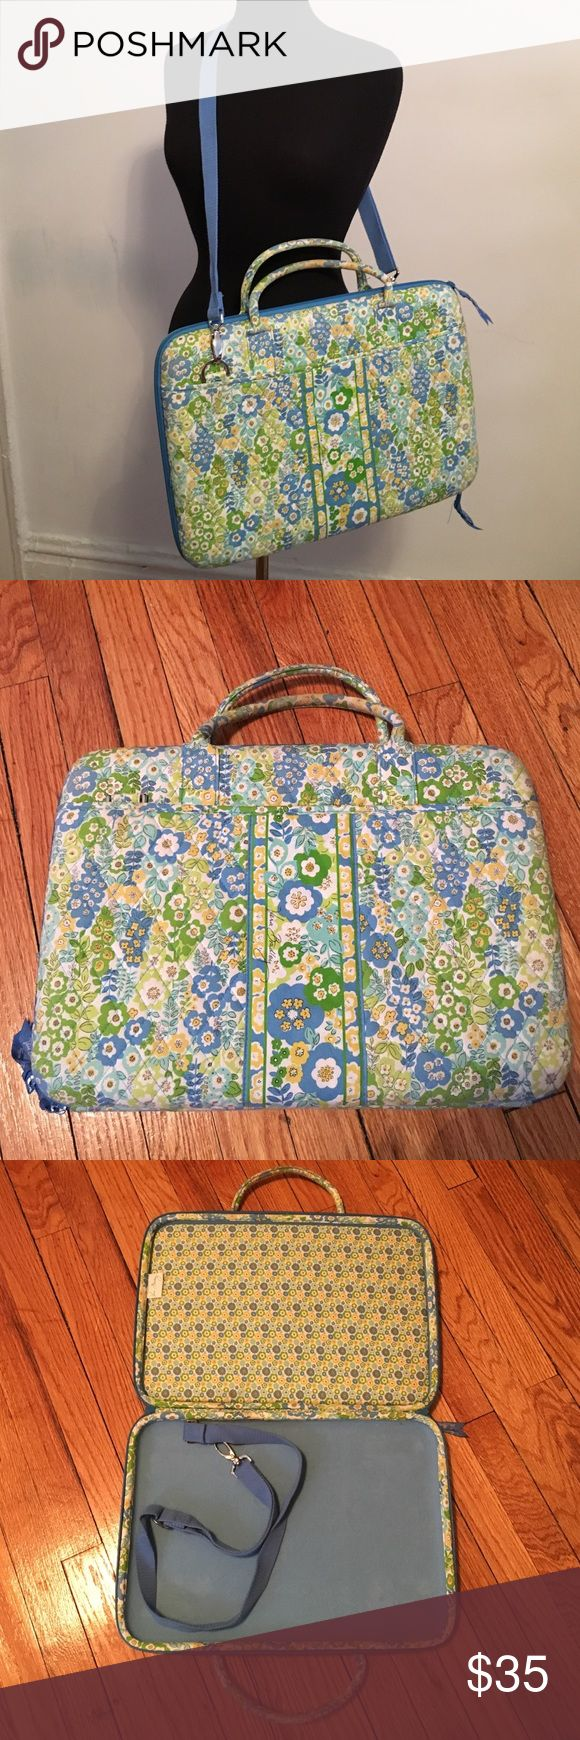 Vera Bradley Laptop Bag 16 by 11 inches; no tear, rips or stains; visible wear to hand strap, as pictured Vera Bradley Bags Laptop Bags